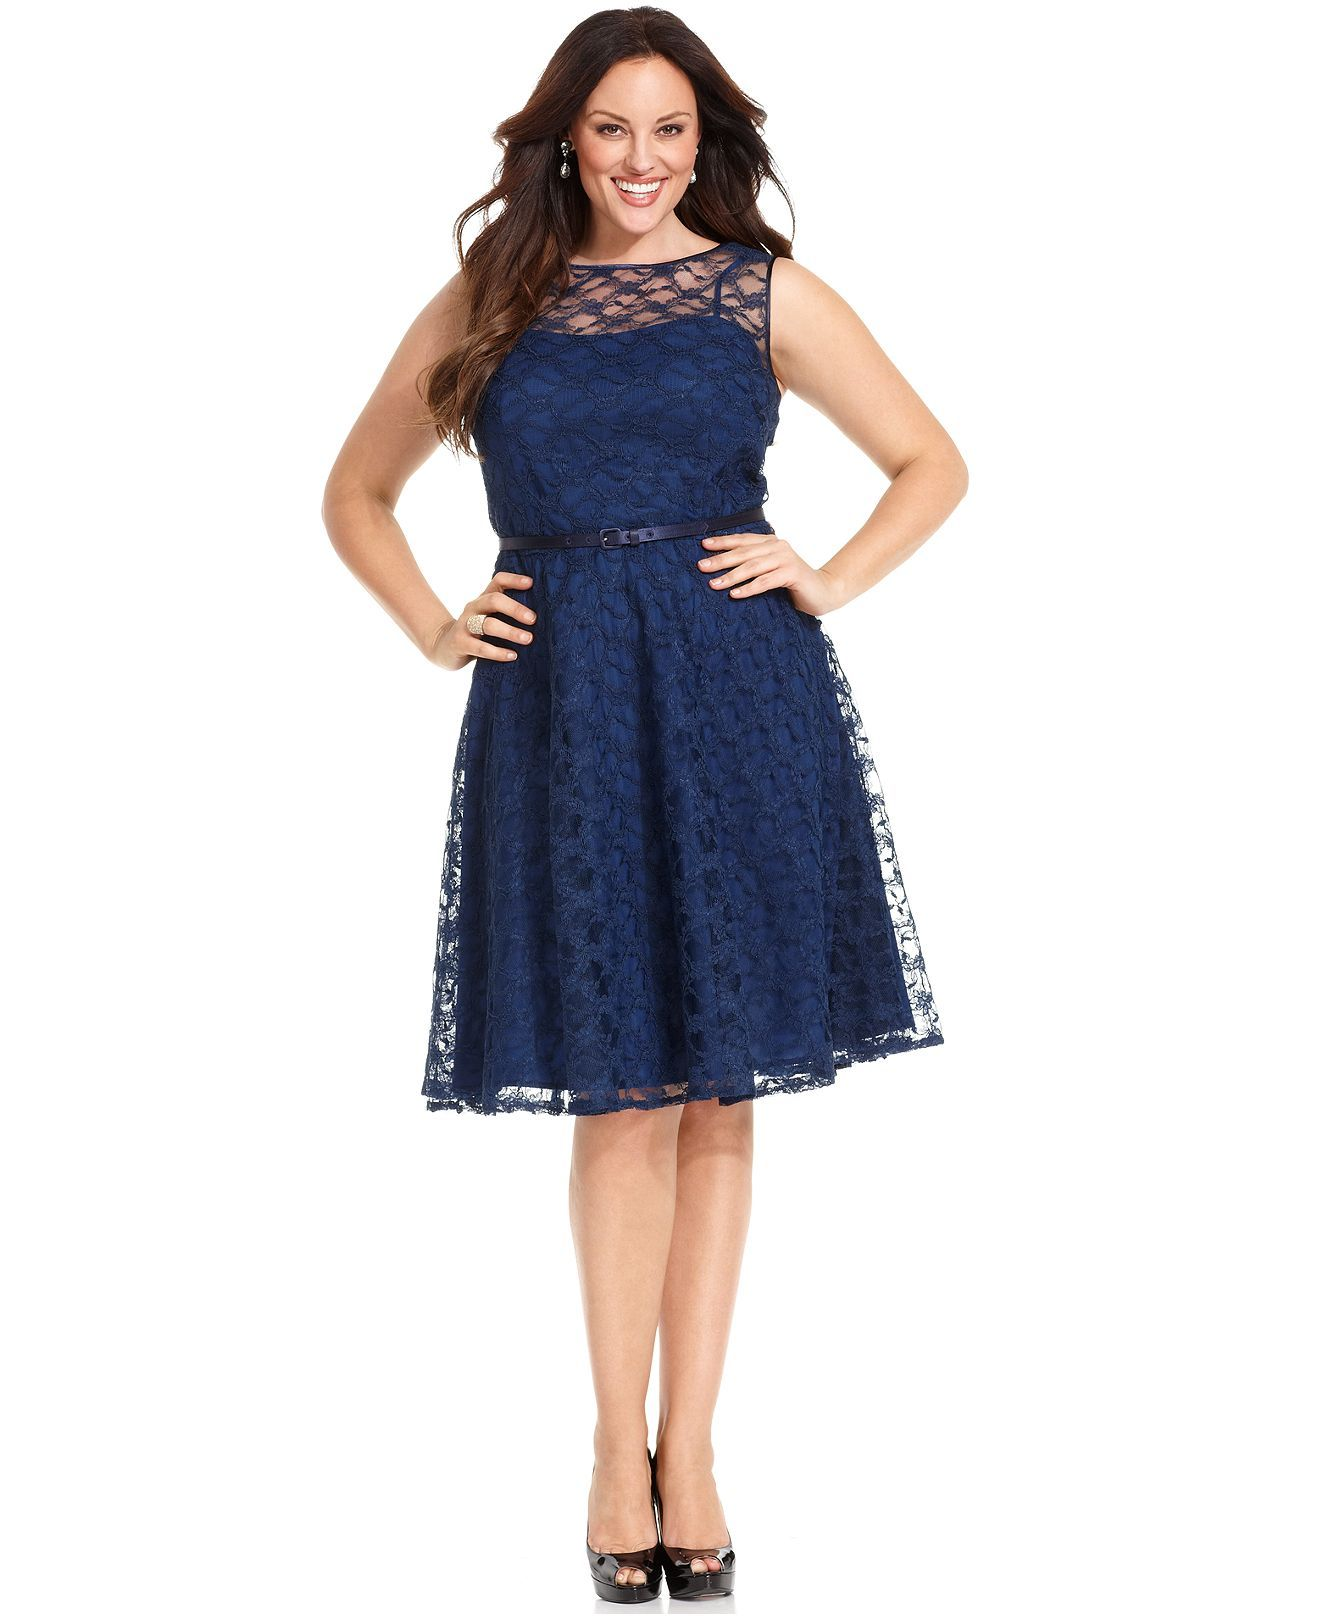 Jones New York Navy Dress, Sleeveless Lace Belted Full-Skirt ...